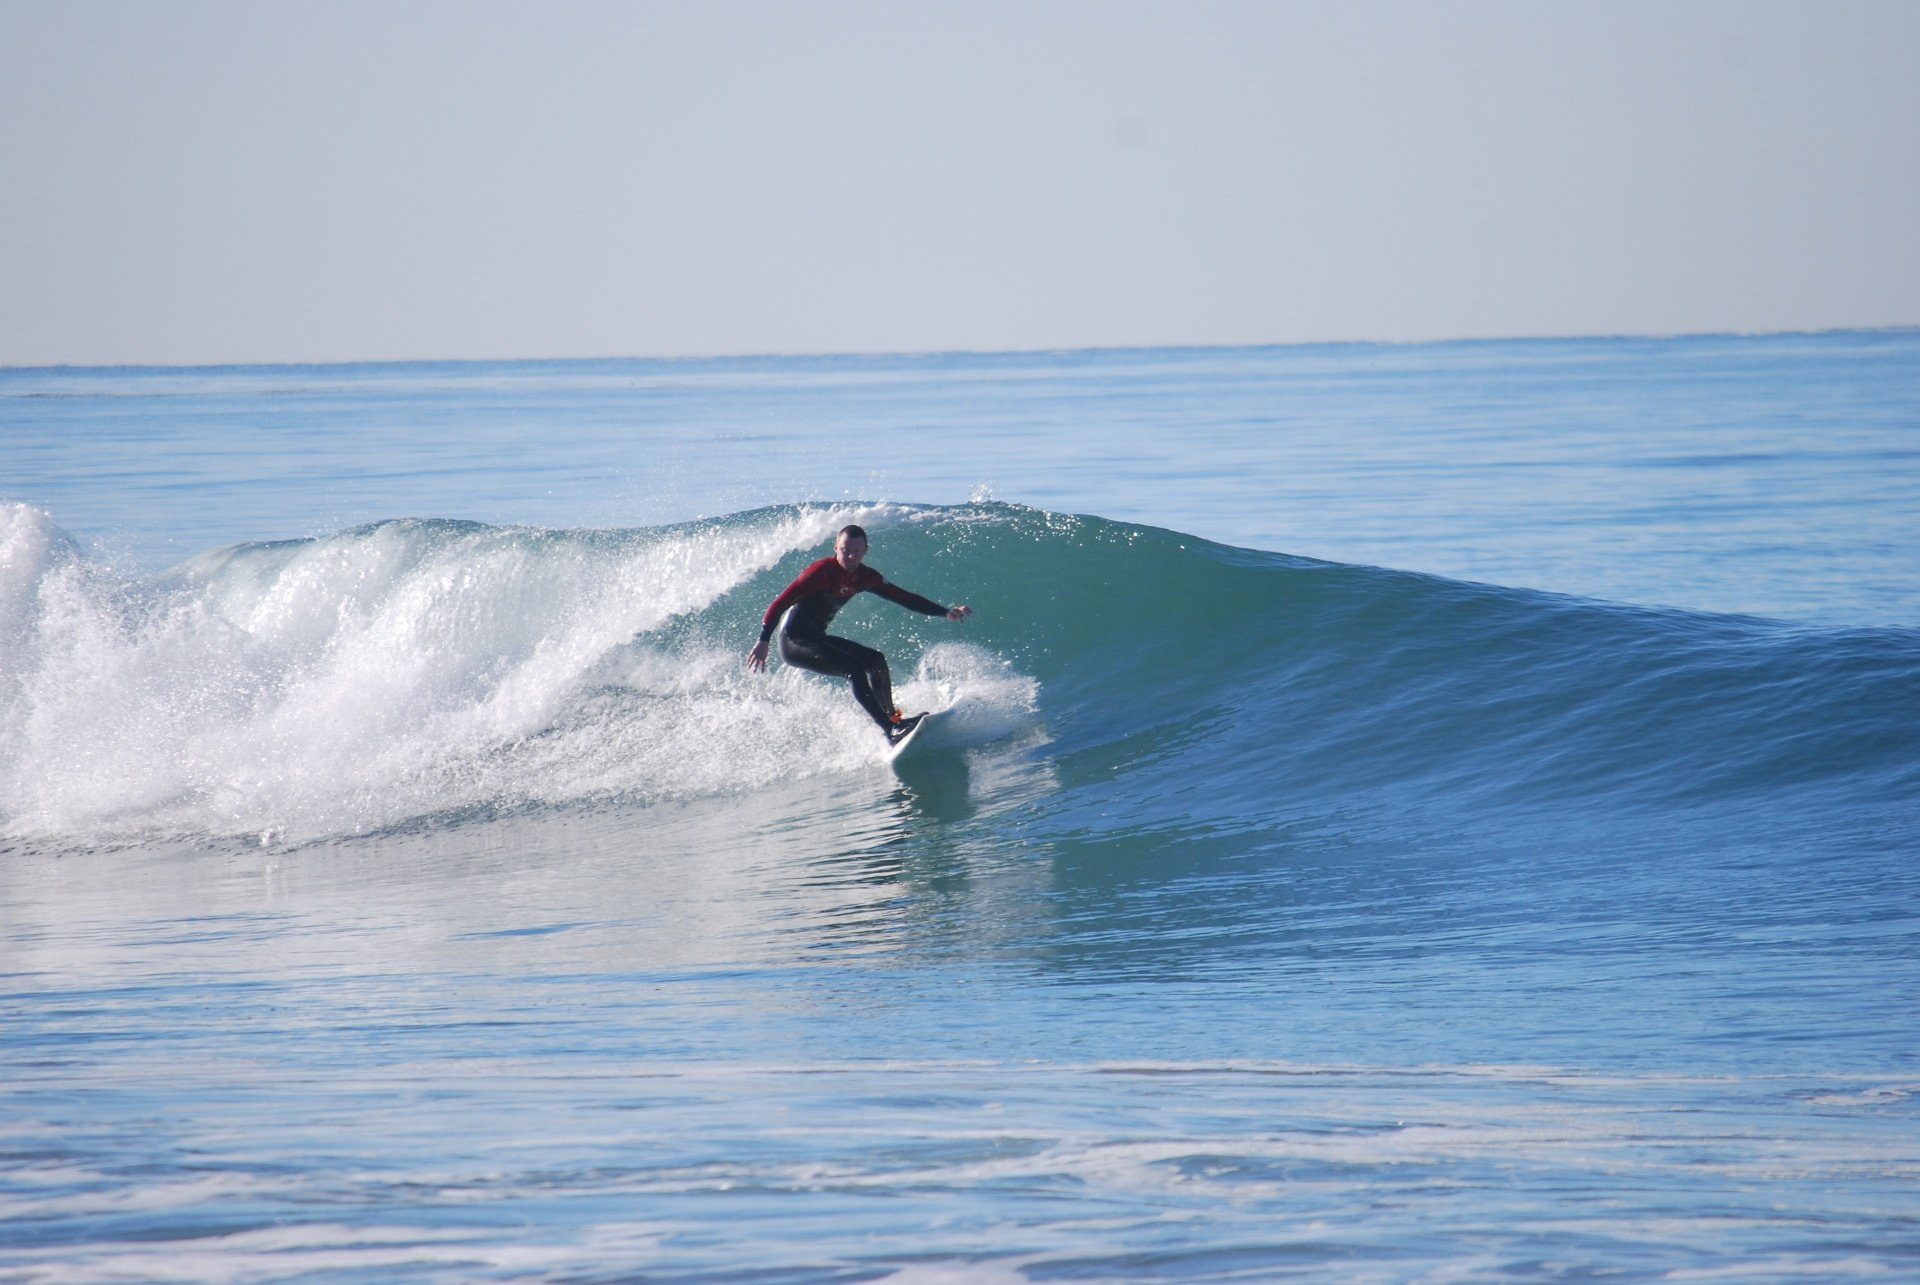 Surfer's photo of Trestles